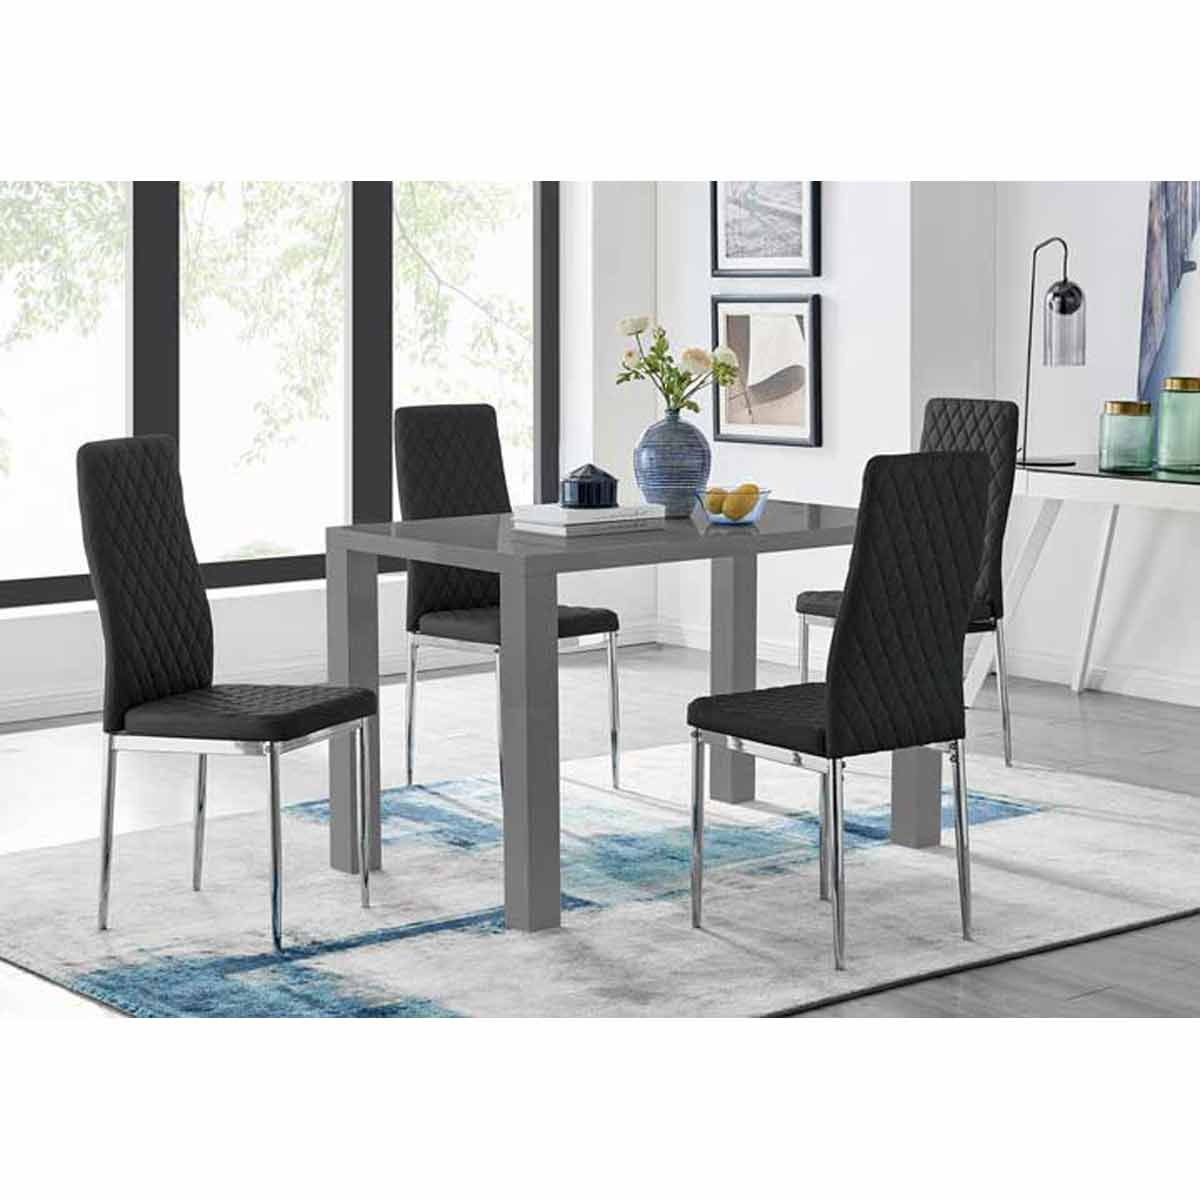 Furniture Box Pivero 4 Grey High Gloss Dining Table And 4 Modern Black Milan Chairs Set